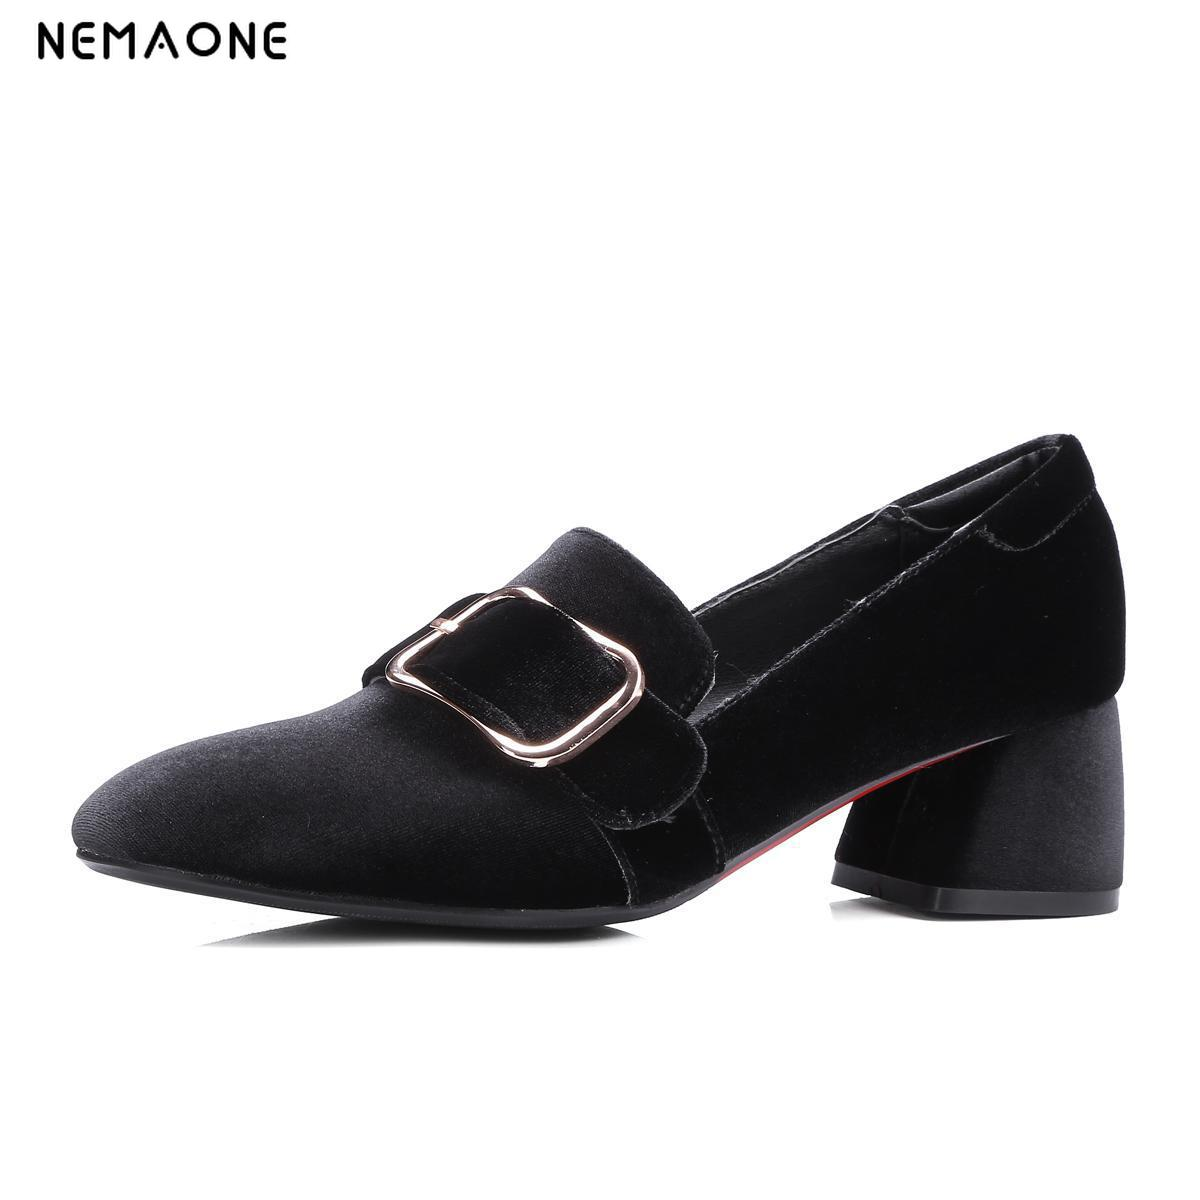 NEMAONE Sexy high Heel Women's Pumps Spring Autumn Square Toe Flock Slip On Female Square Heel Pumps Ladies Single Shoes red spring autumn women s low heel pumps flock plain pointed toe shallow slip on ladies casual single shoes zapatos mujer black